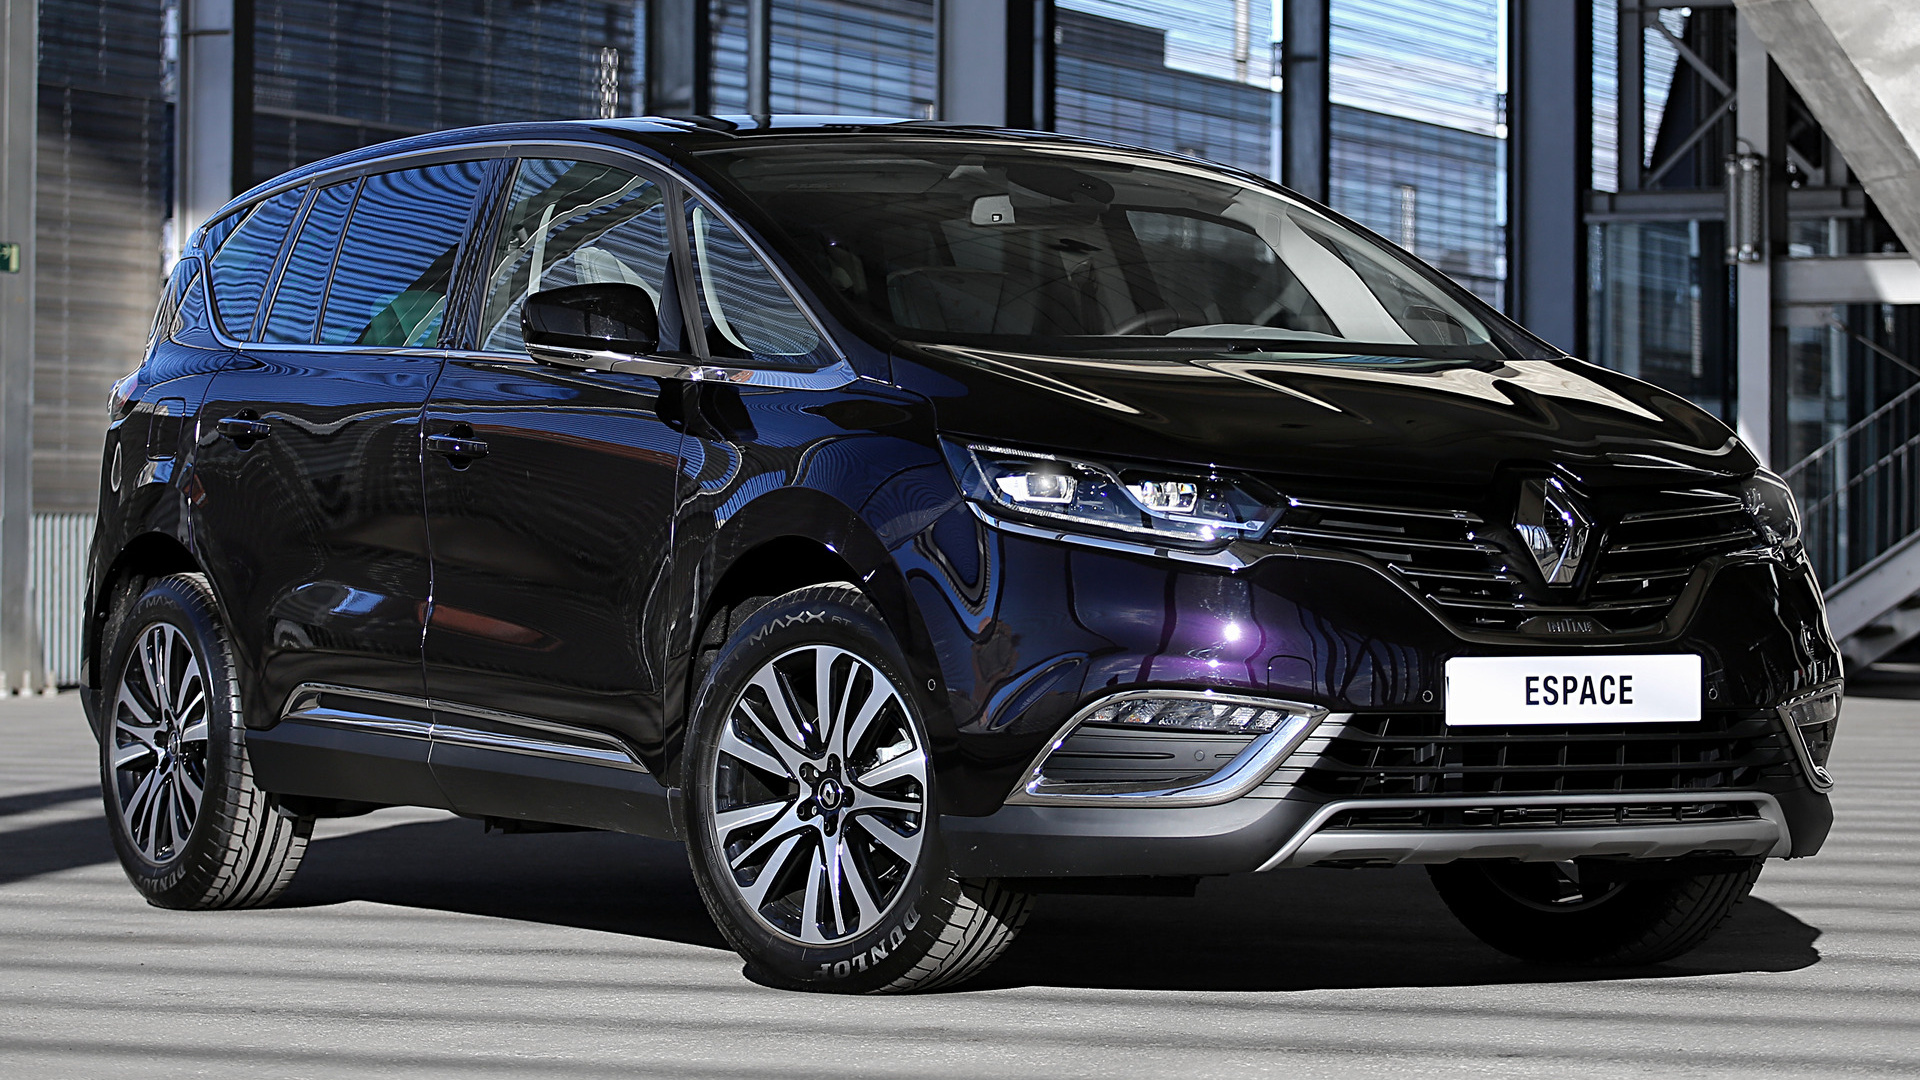 2015 Renault Espace Initiale Paris Wallpapers And Hd